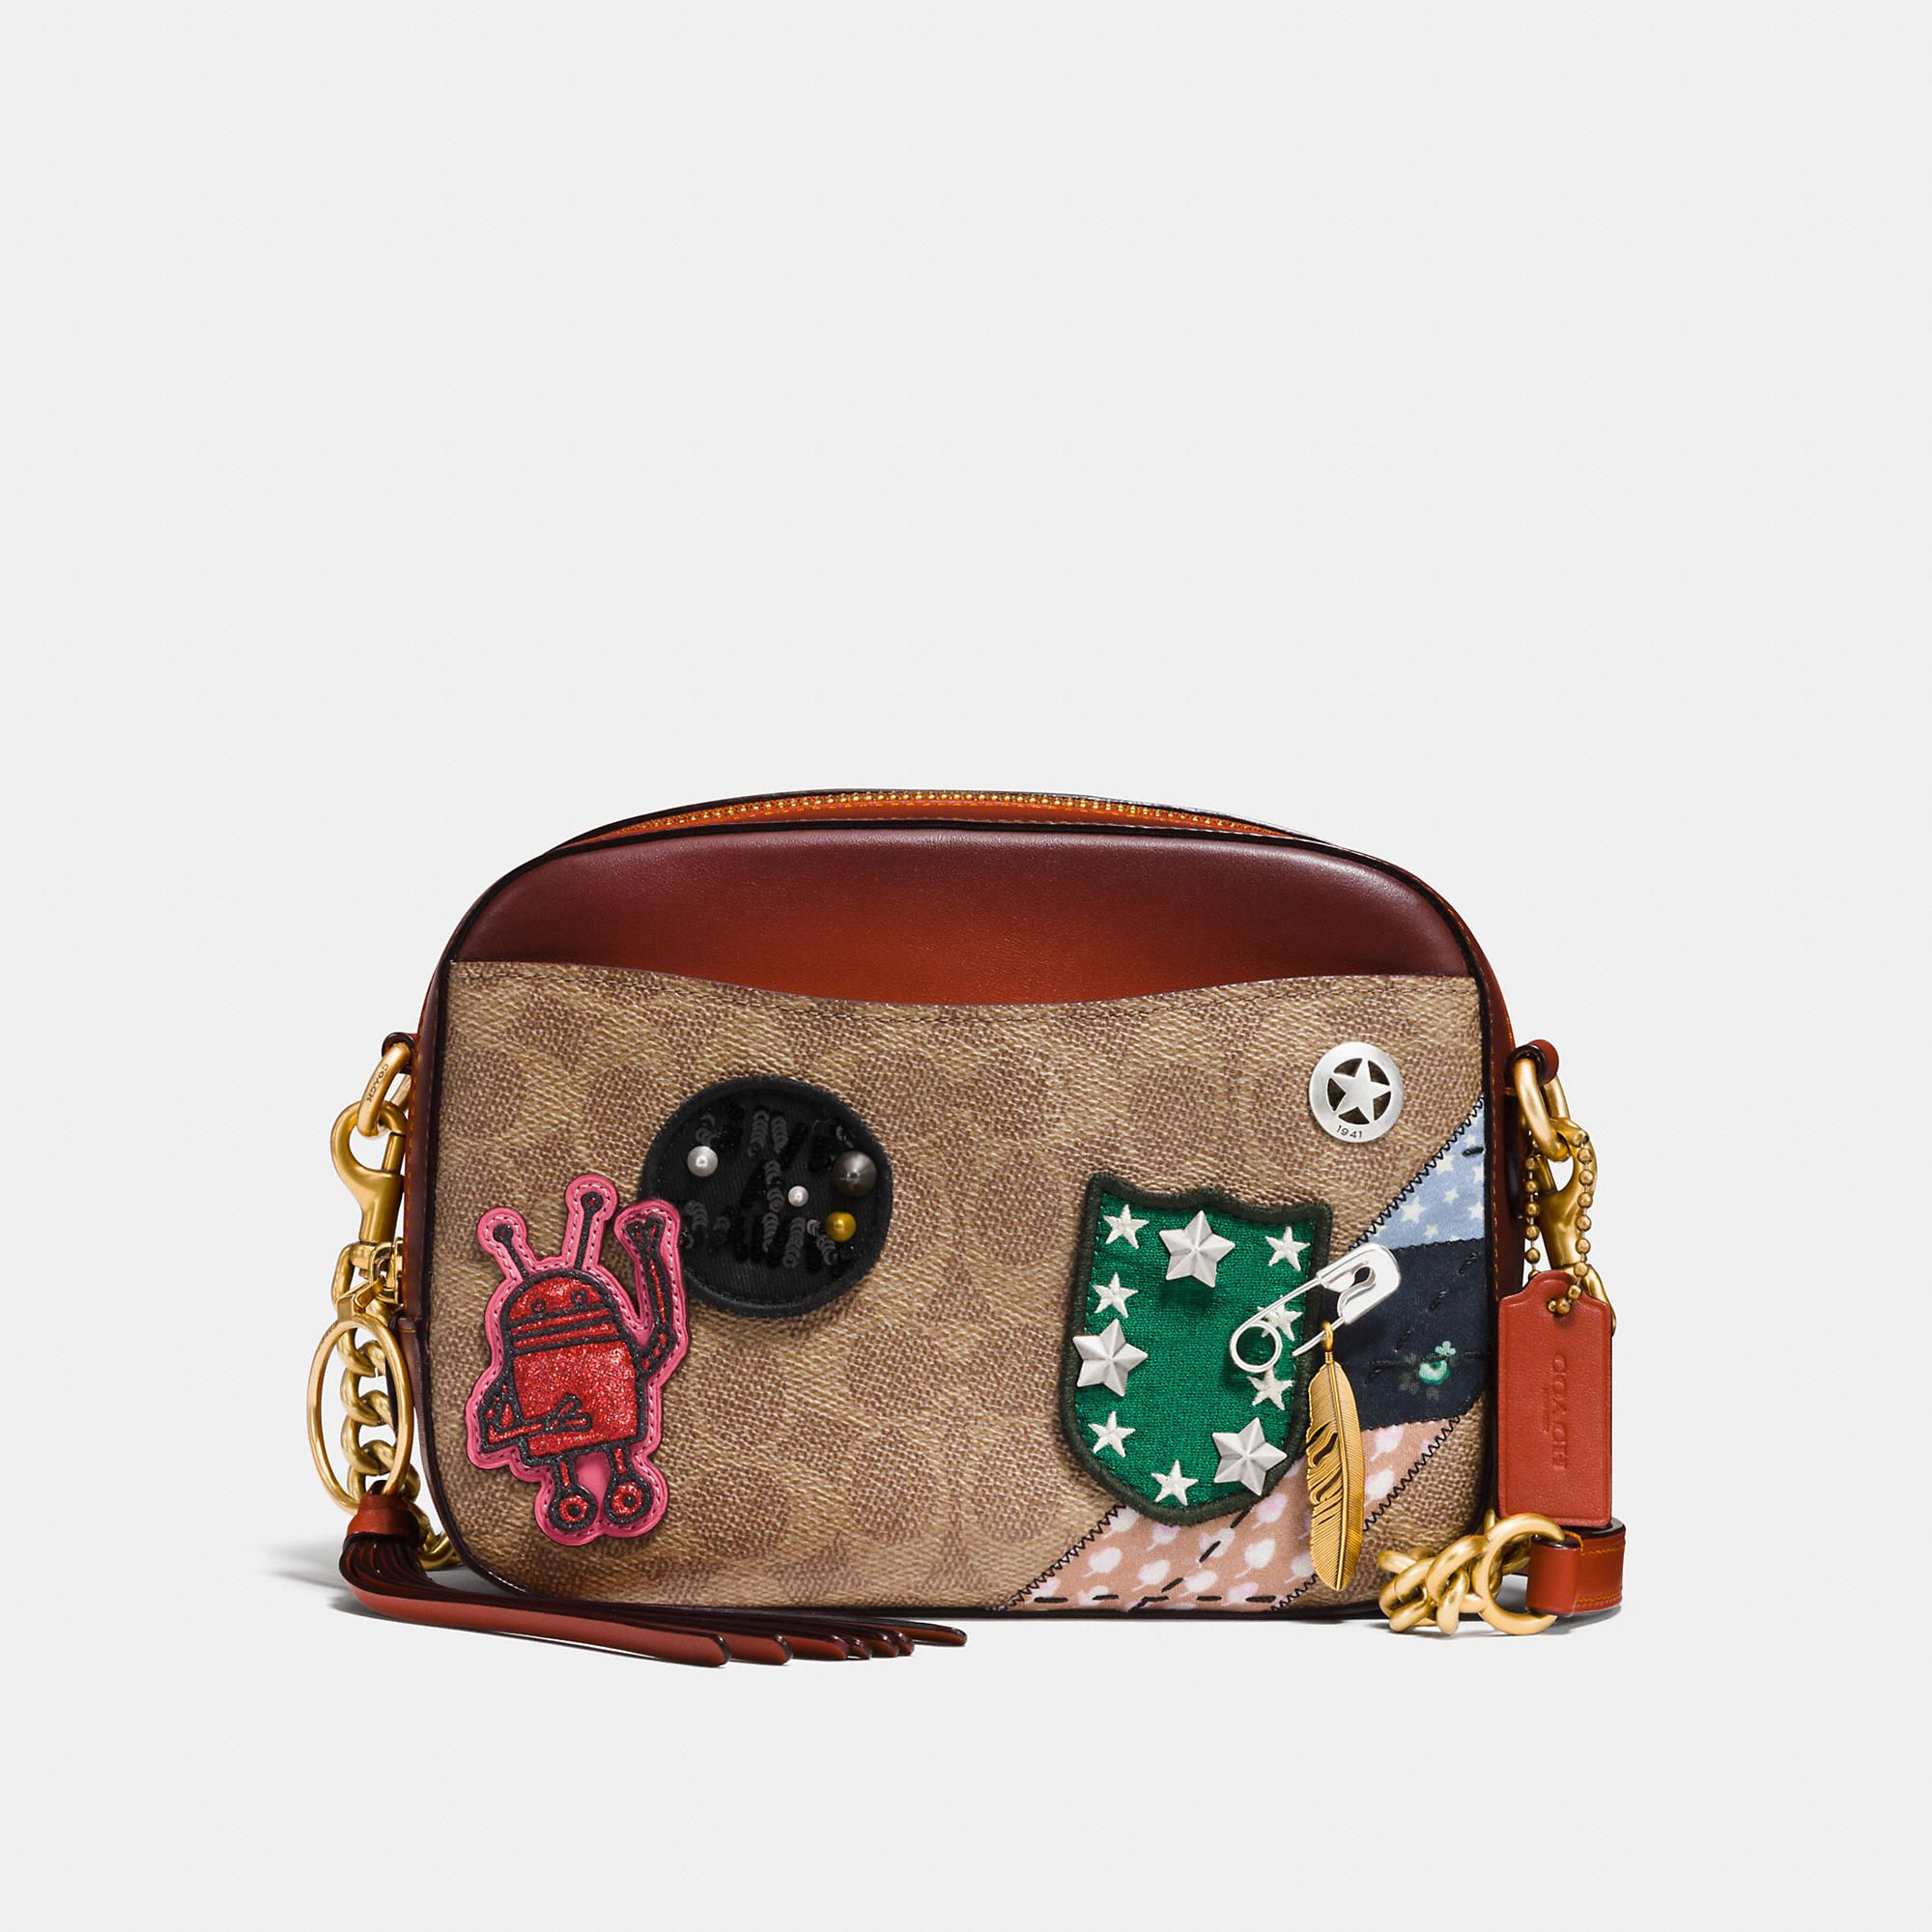 0288b79db3d7 COACH COACH X KEITH HARING CAMERA BAG IN SIGNATURE PATCHWORK - WOMEN S.   coach  bags  shoulder bags  leather  canvas  crossbody  lining